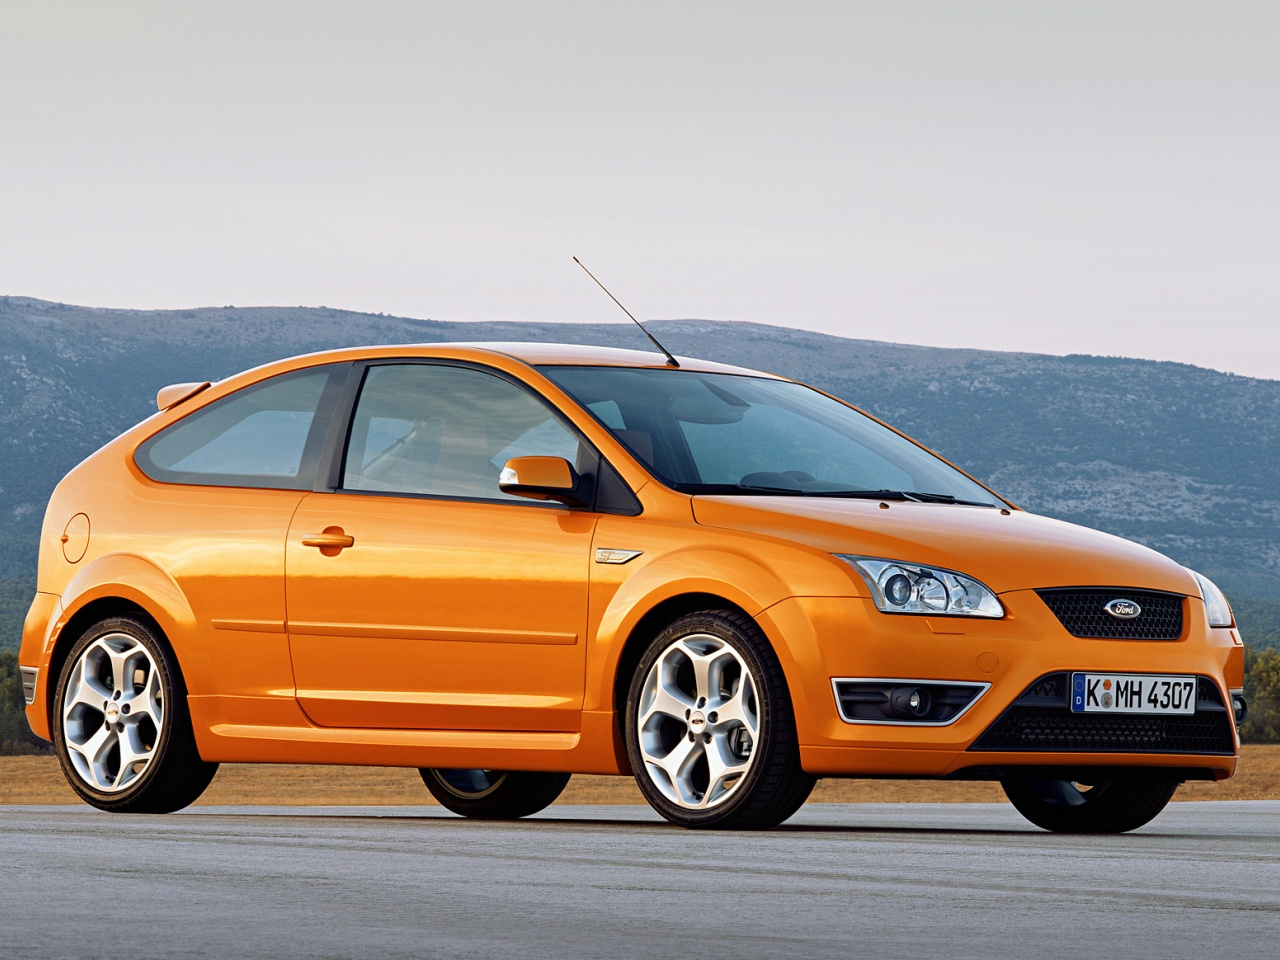 Ford Focus ST 7 wallpapers Ford Focus ST 7 stock photos 1280x960